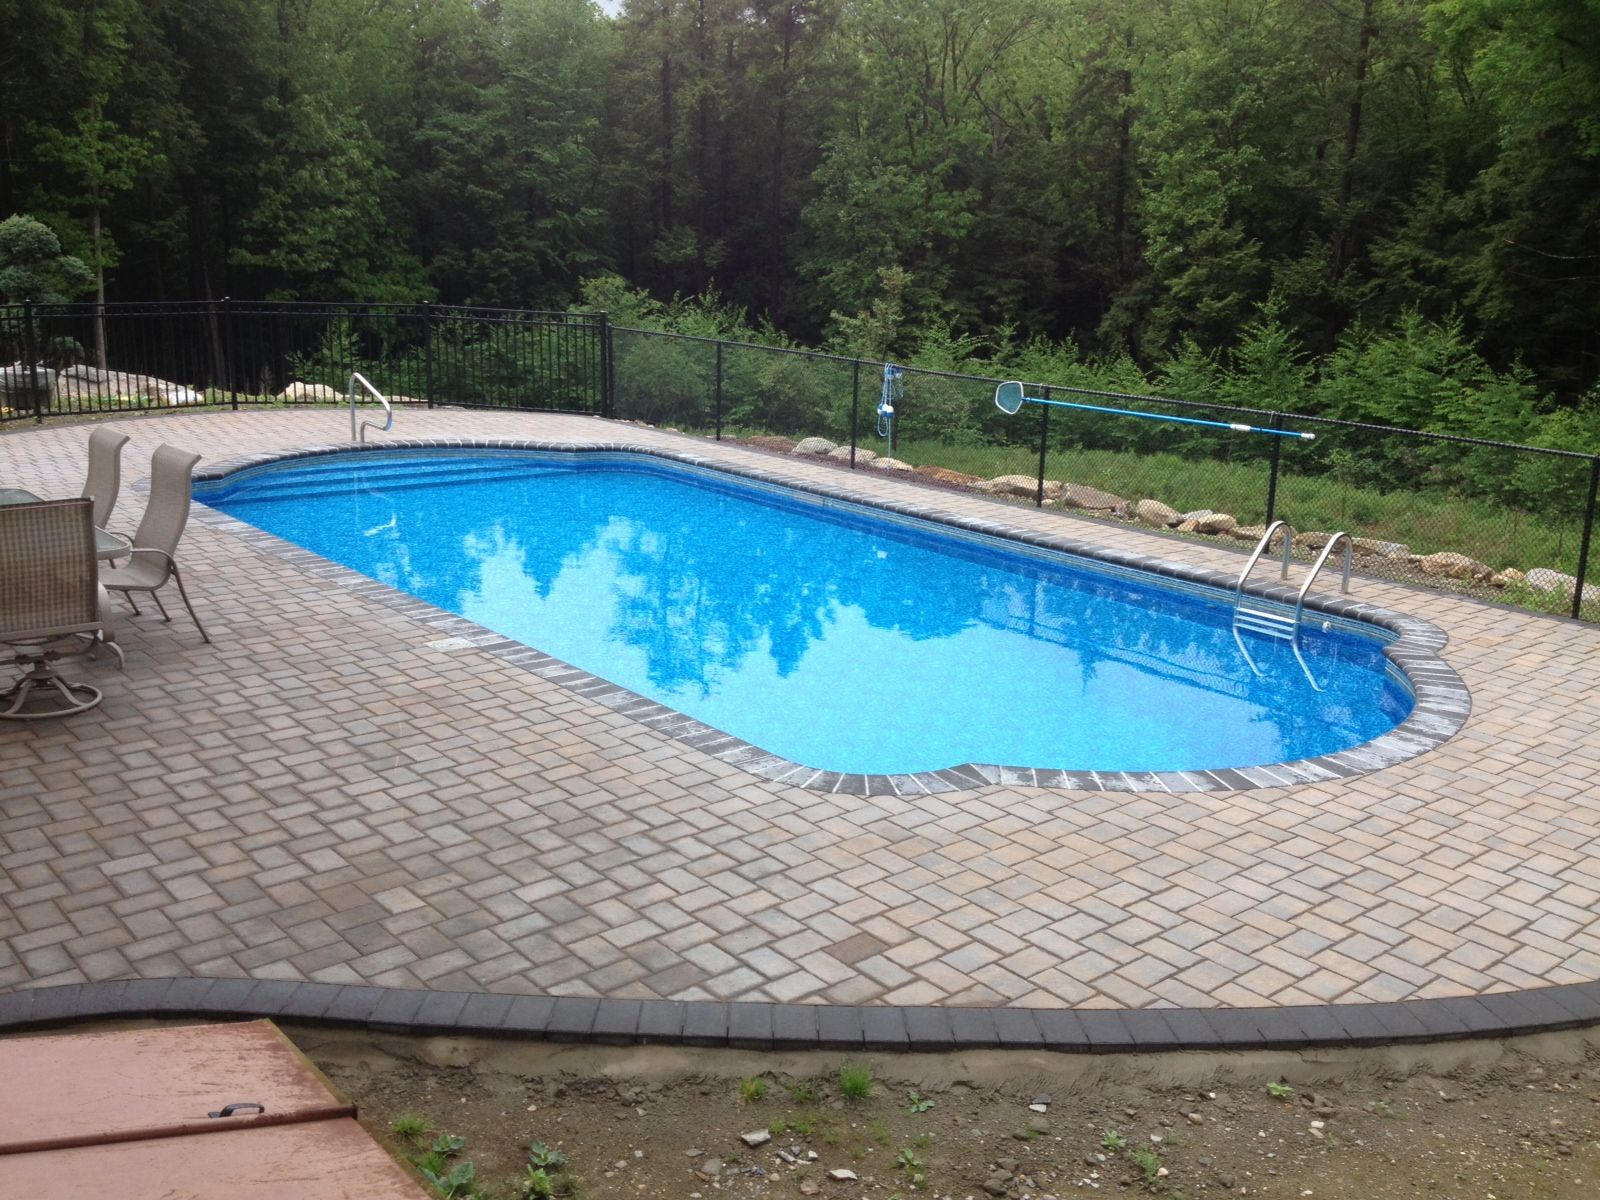 Double roman end shaped vinyl lined steel in-ground pool